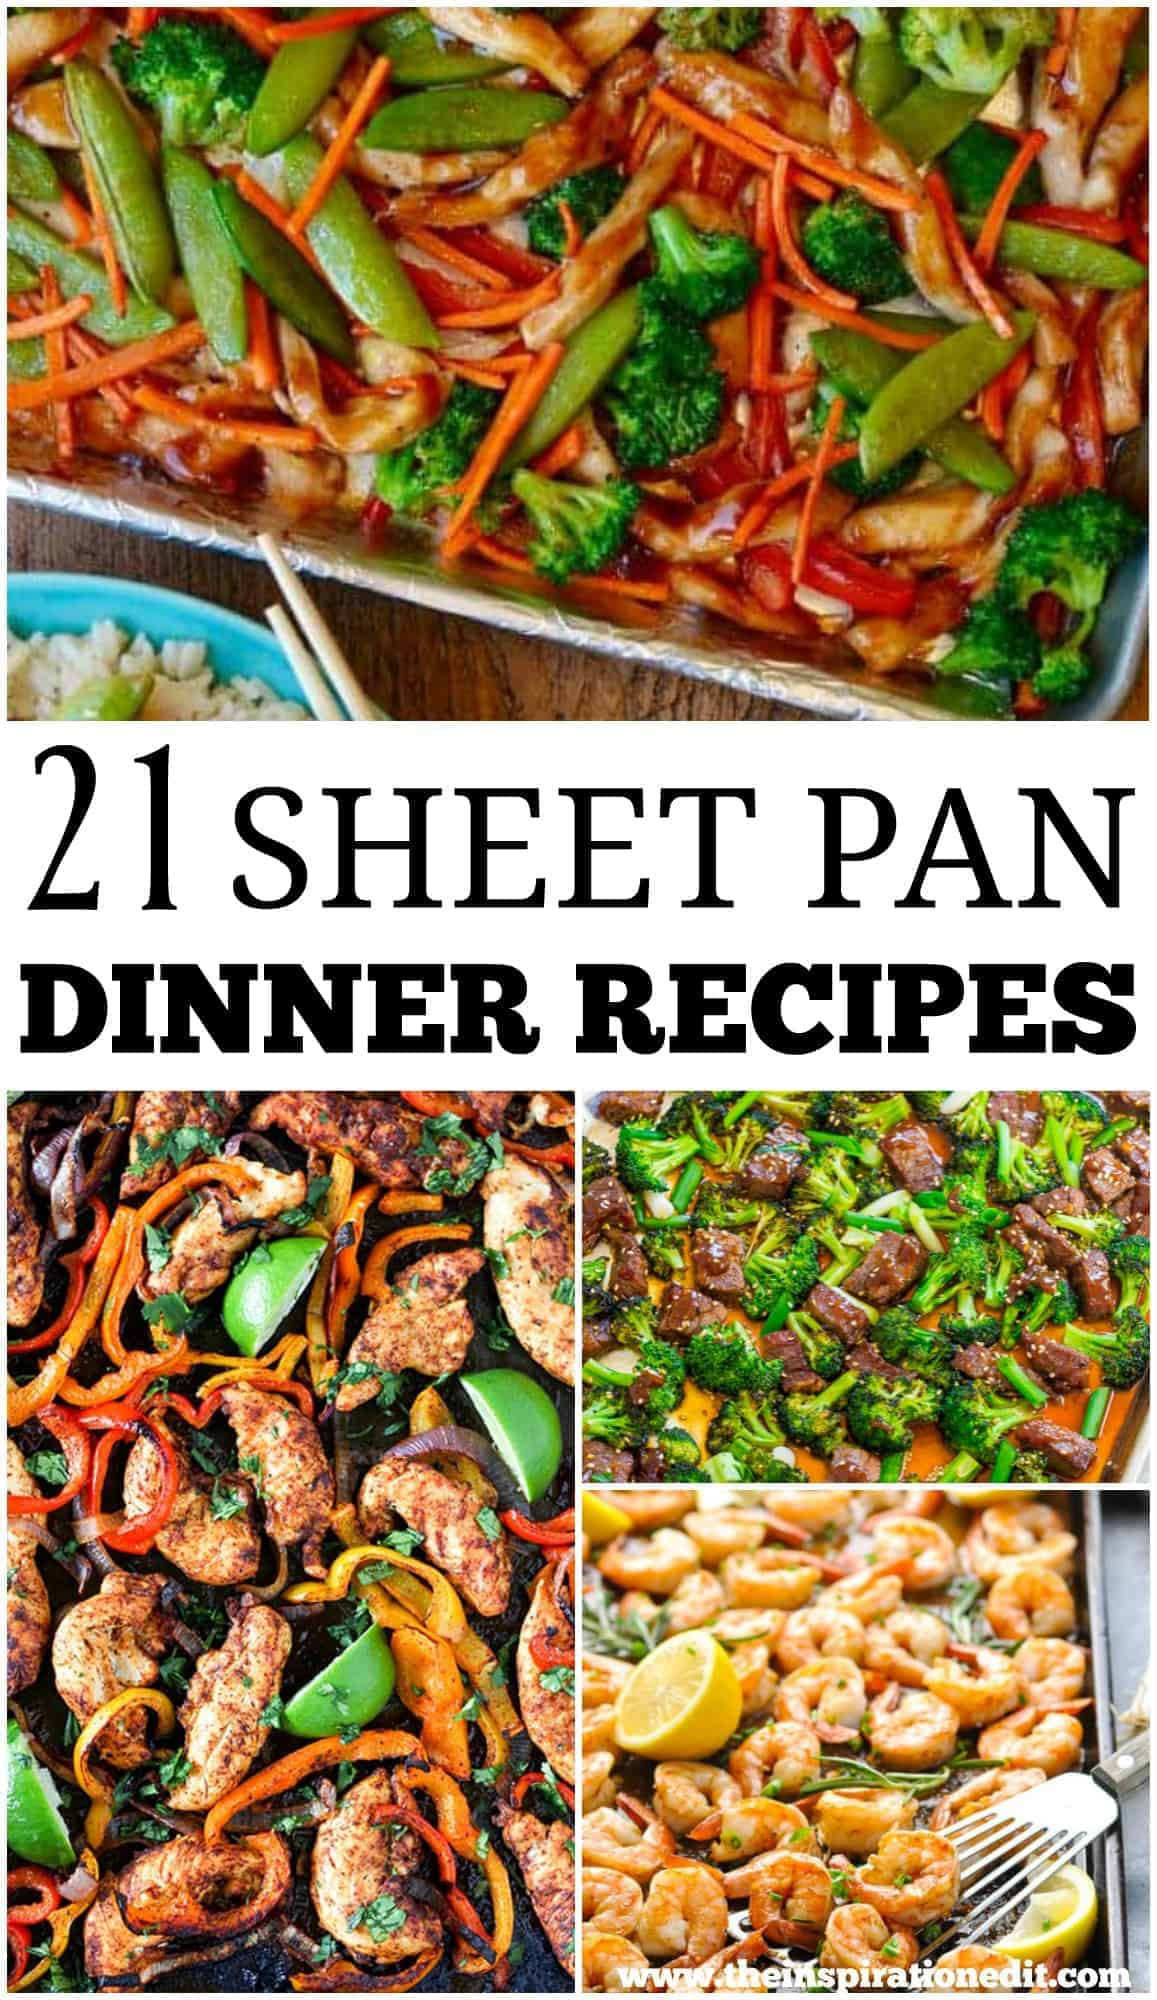 21 Sheet Pan Dinner Recipes For Busy Nights. These fantastic family recipes are great for family meals and easy recipe ideas. #Sheetpan #sheetpanmeal #sheetpandinners #recipes #healthyrecipes #highprotein #chickenrecipes #familymeals #familyrecipes #dinnerrecipes #dinnerideas #winterrecipes #tastyrecipes #healthyrecipes #healthyeating #healthyfood